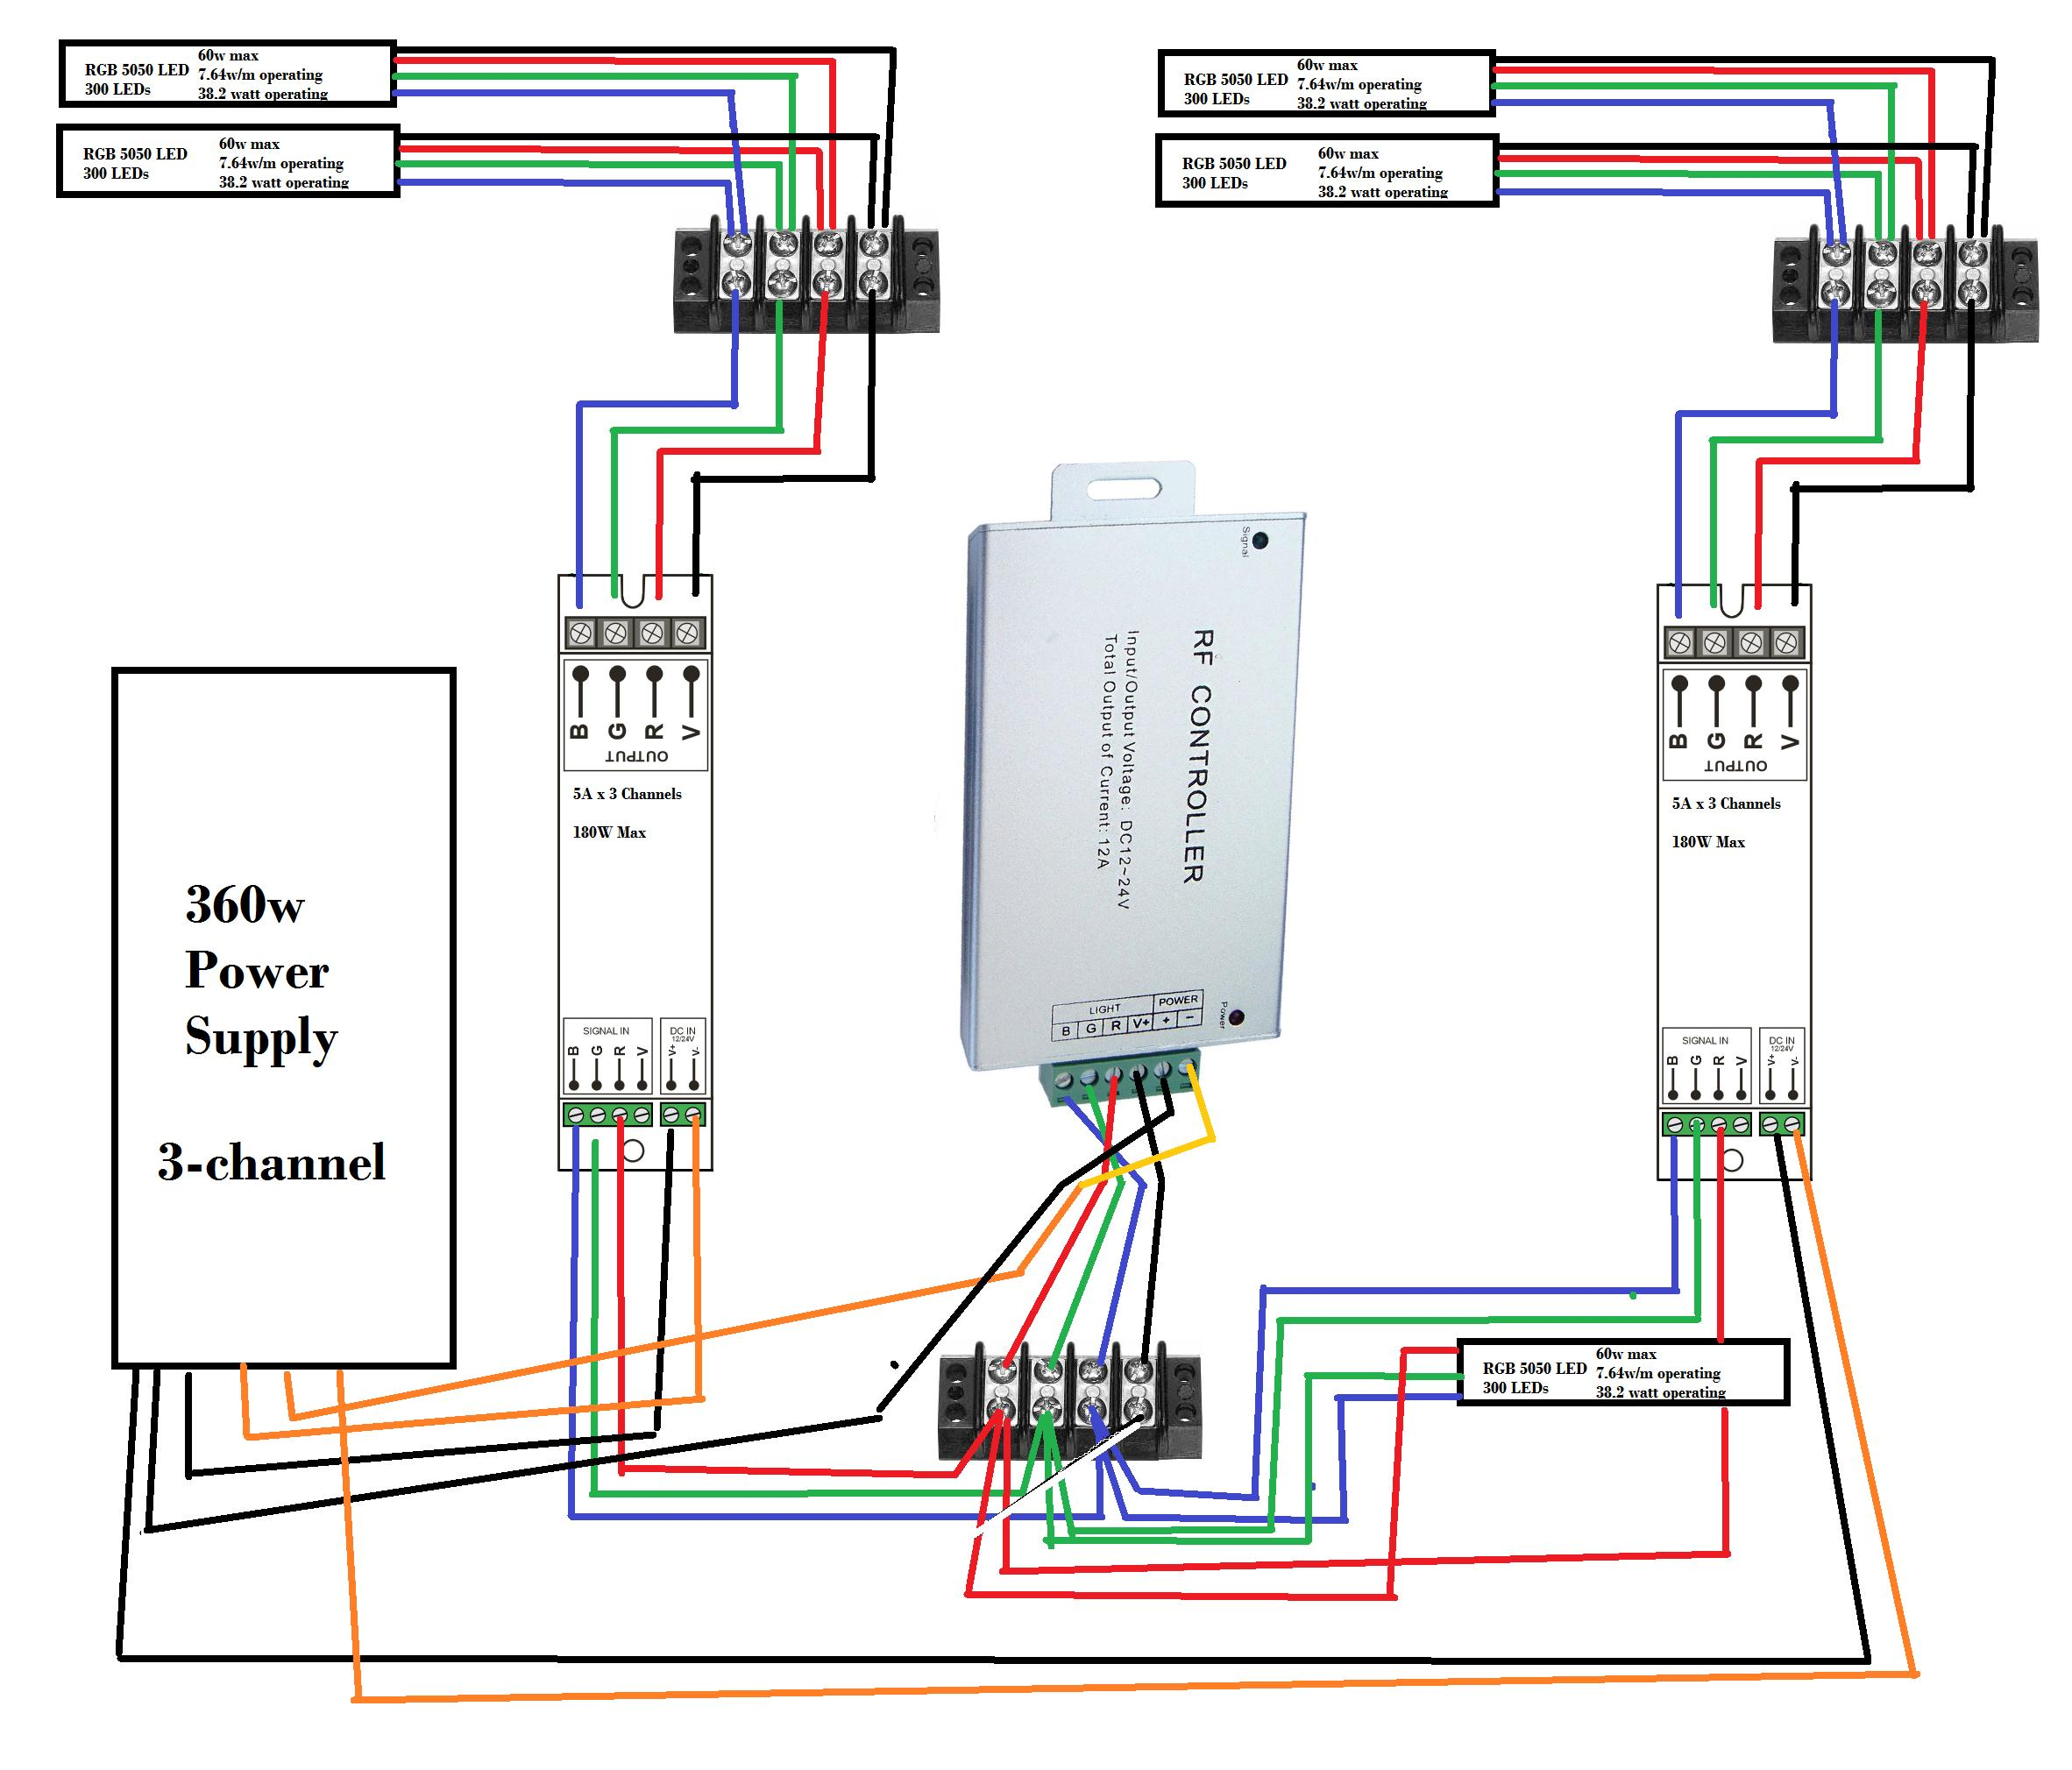 Led Strip Multiple LED's One Controller Diagram Included